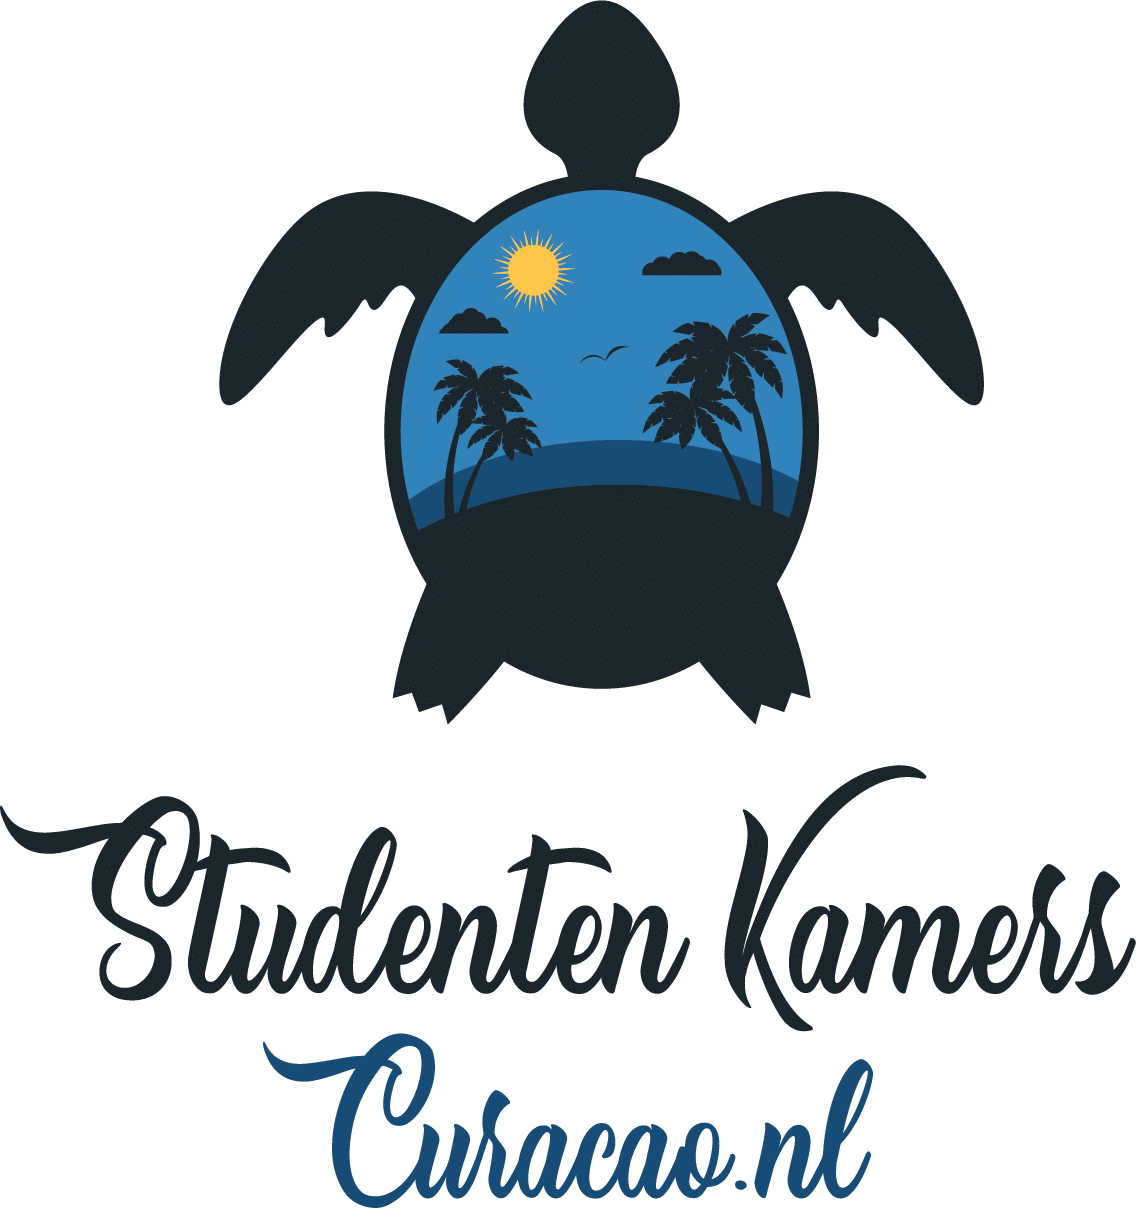 Studentenkamers Curacao